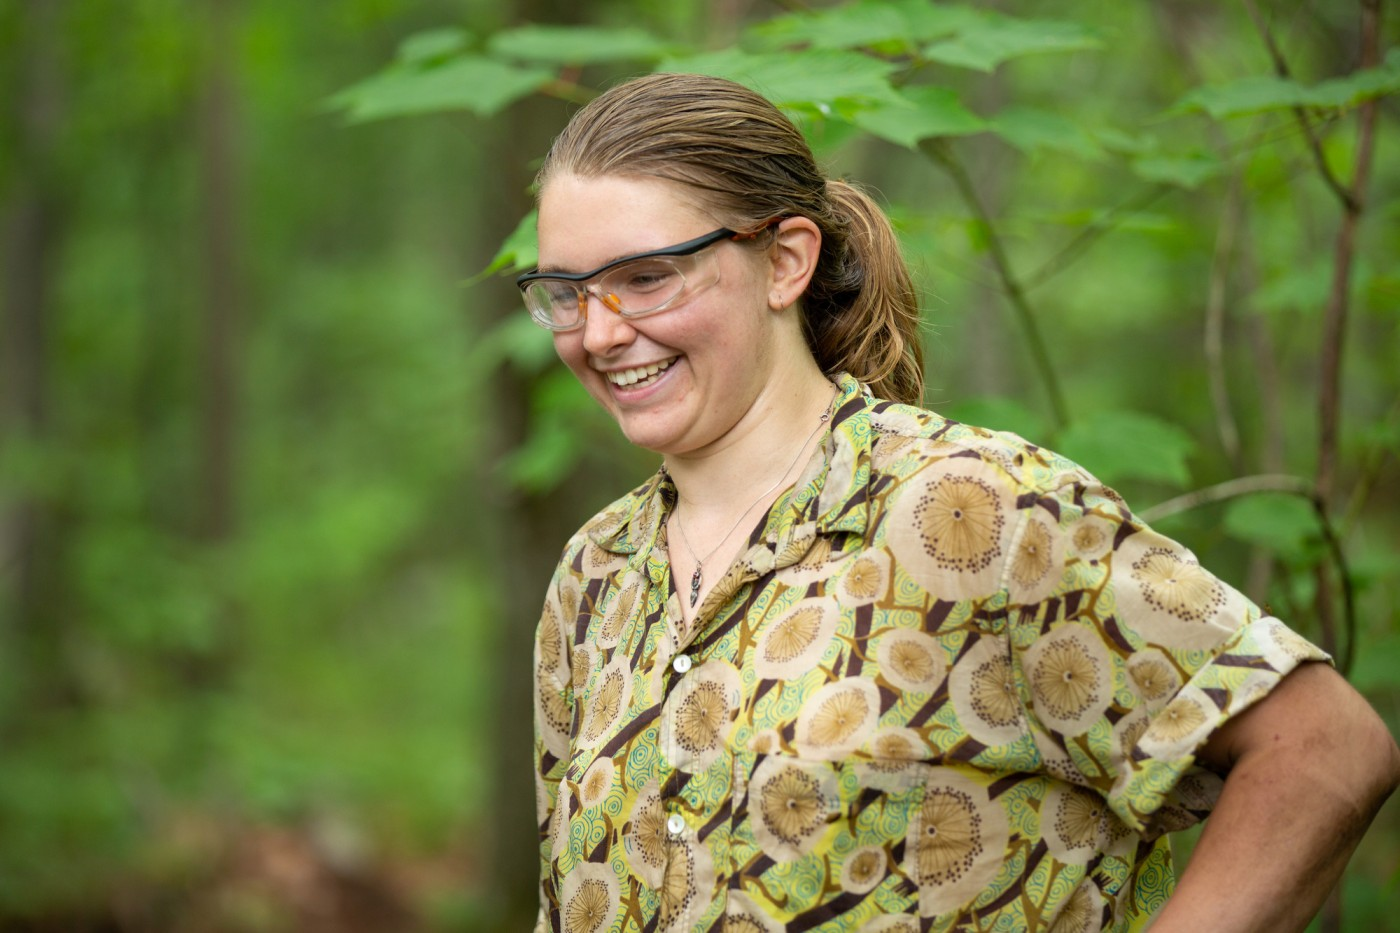 Poke-O-Moonshine was Adirondack Trail Crew leader Char's third all-woman project.